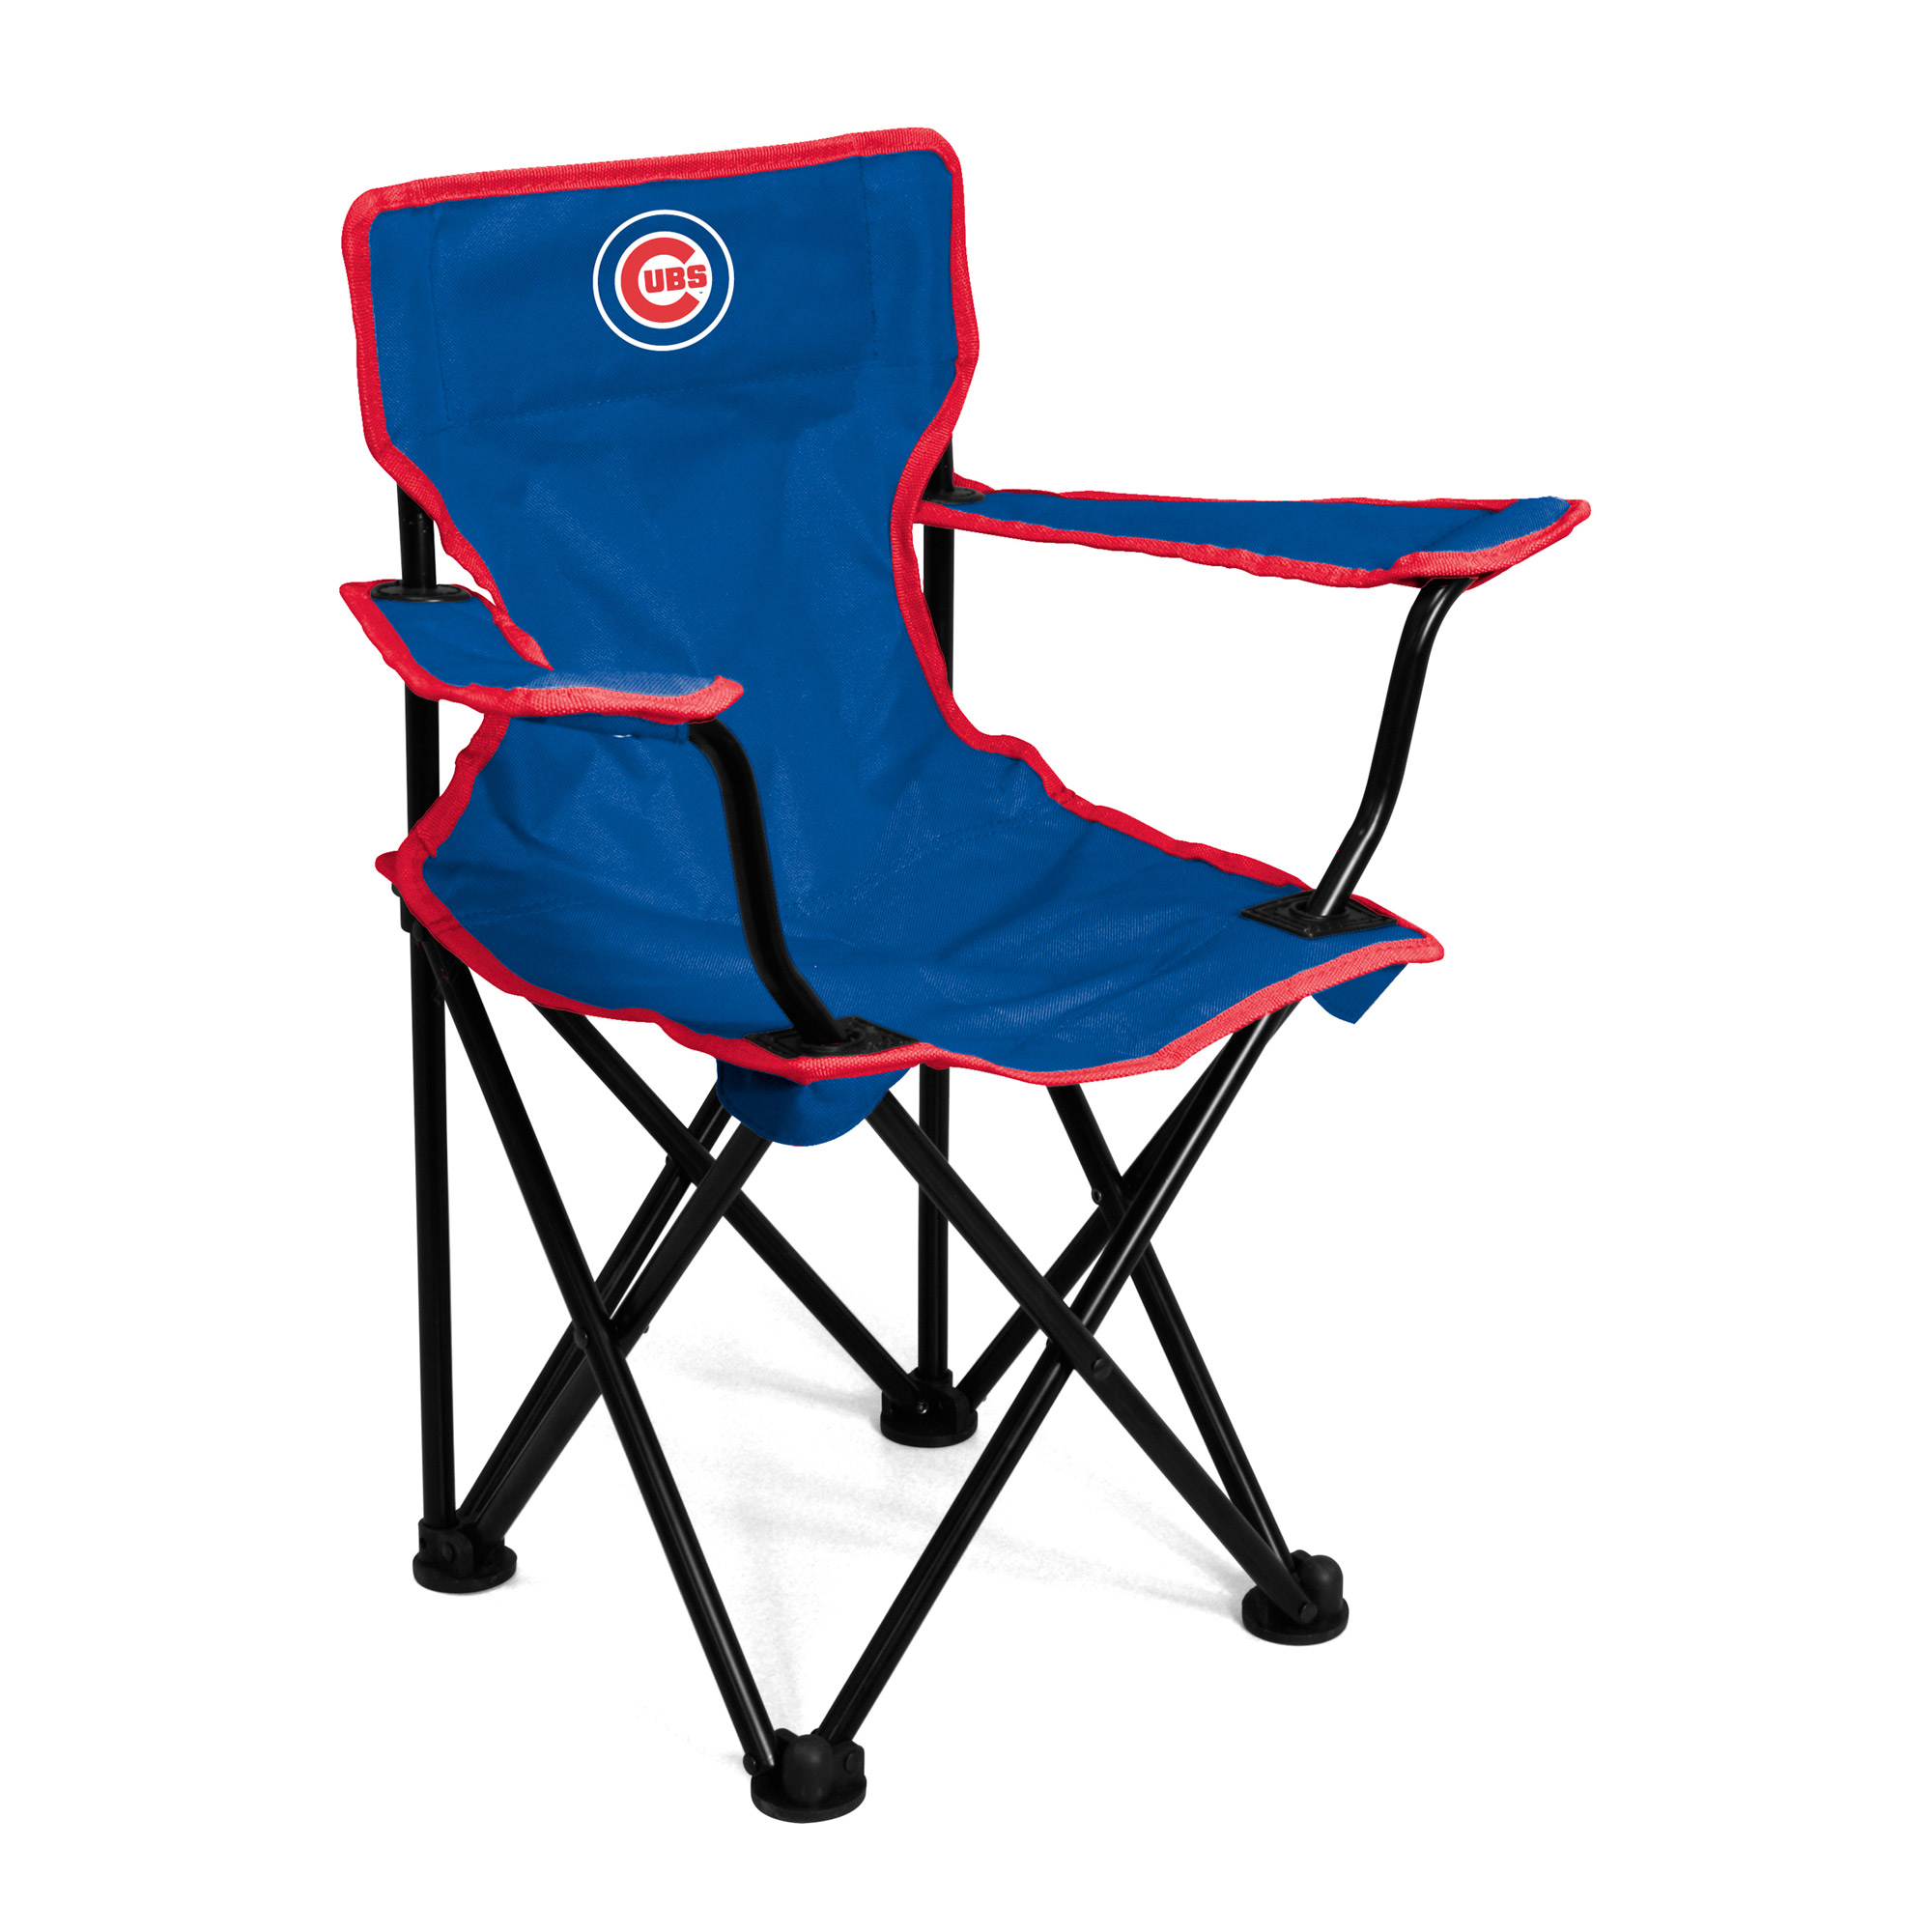 Chicago Cubs Toddler Chair - No Size